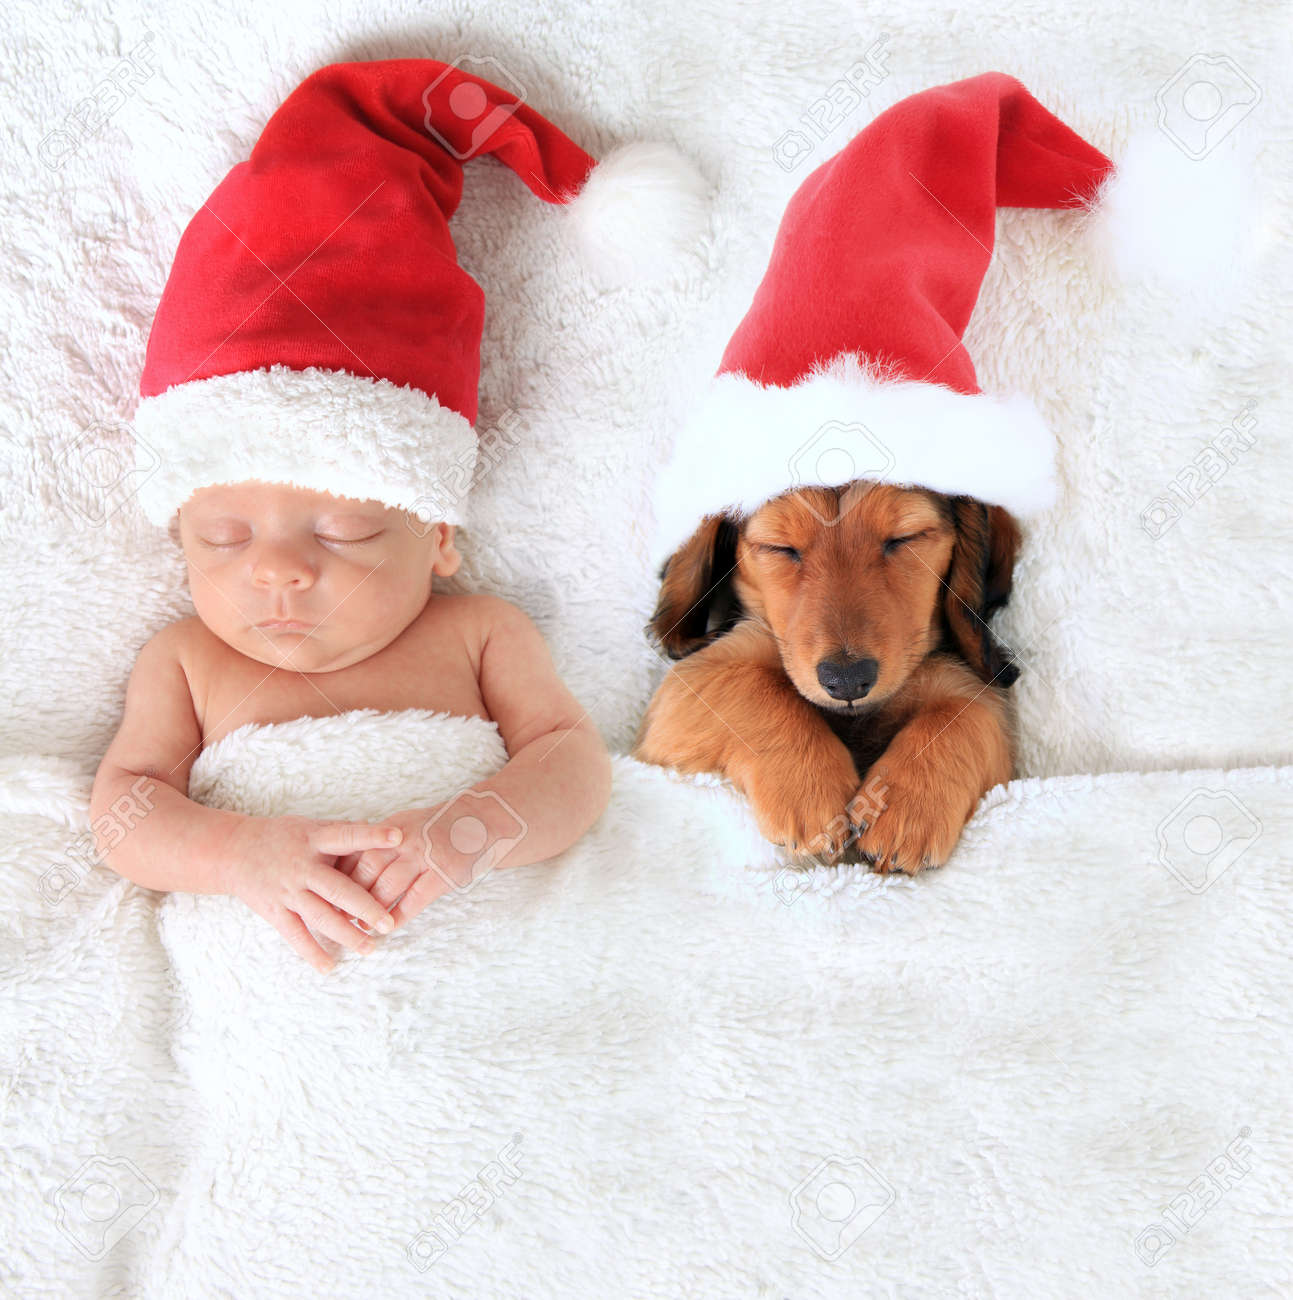 Sleeping Newborn Christmas Baby Alongside A Dachshund Puppy ...